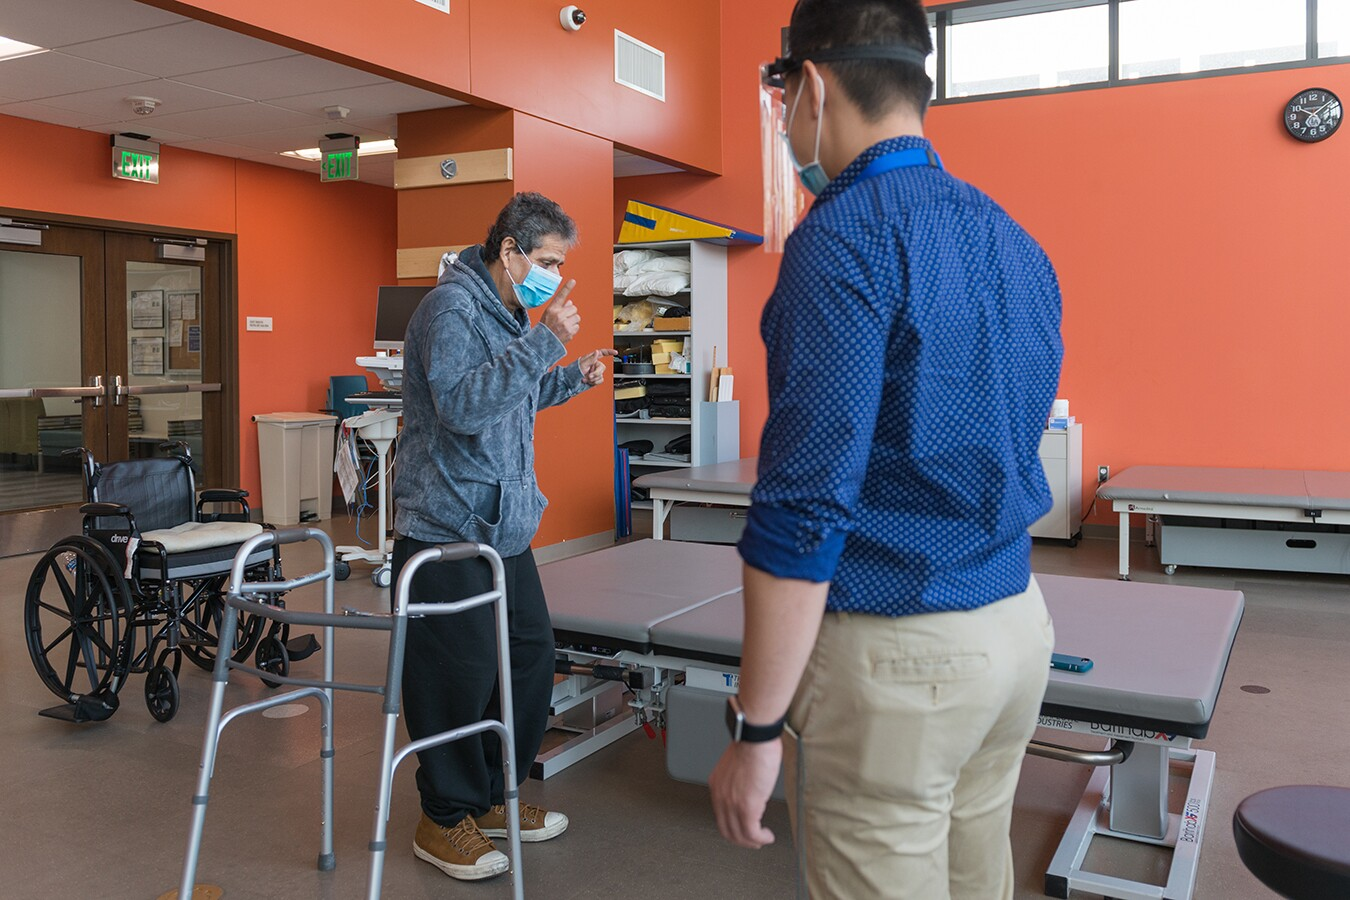 Perez dances to cumbia music as part of his physical therapy.